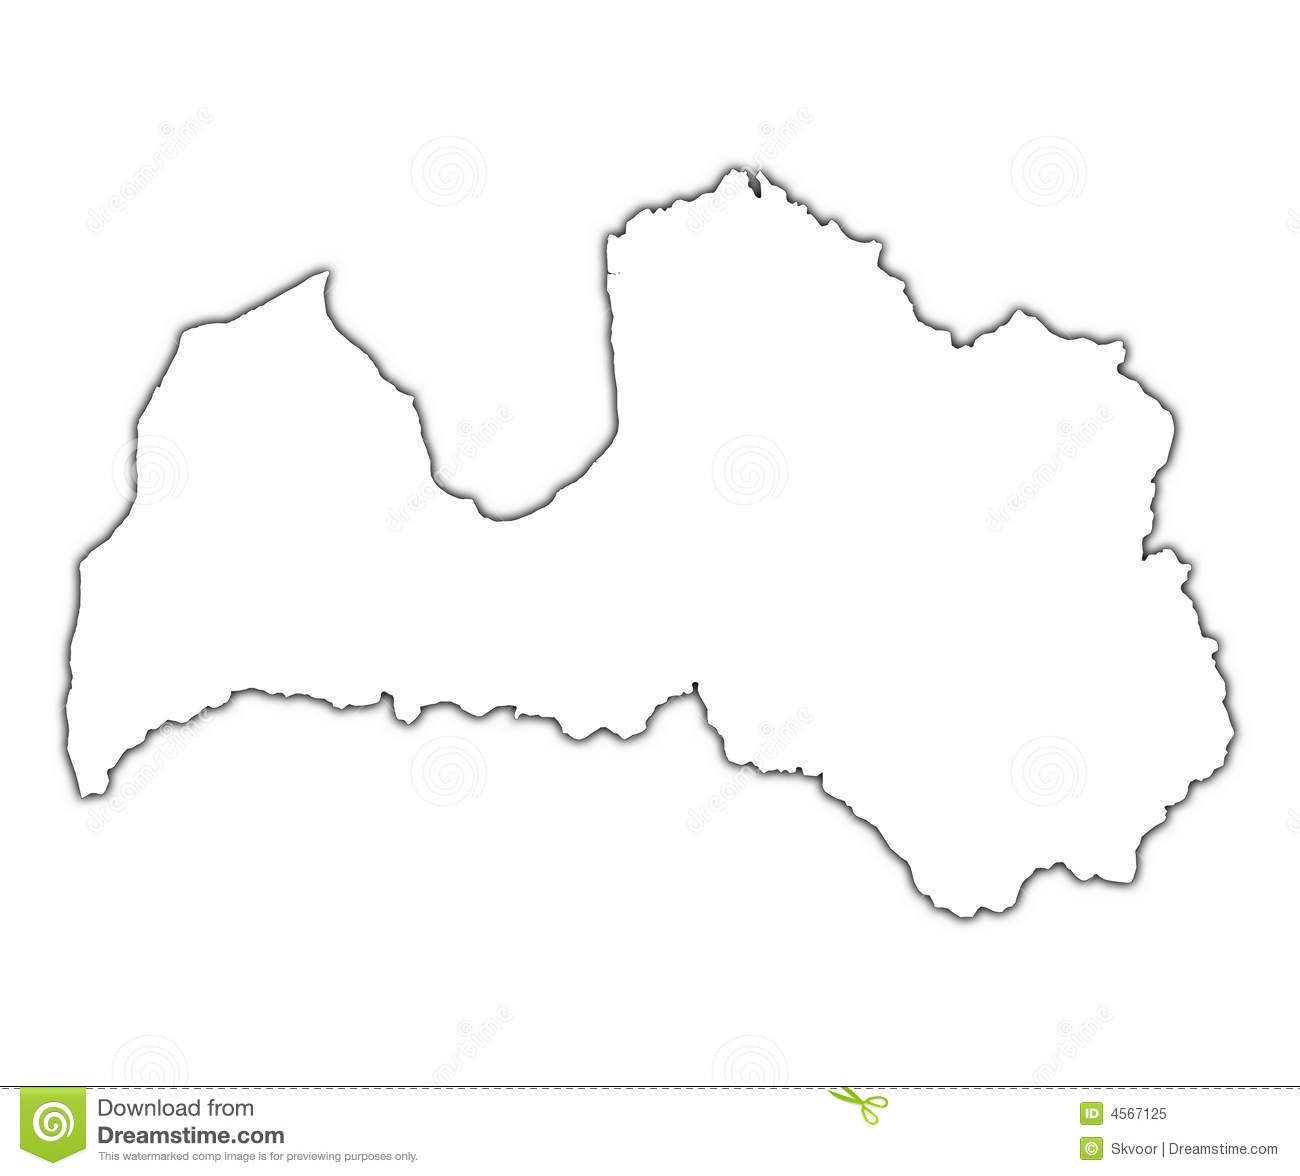 Latvia outline map with shadow. Detailed, Mercator projection.